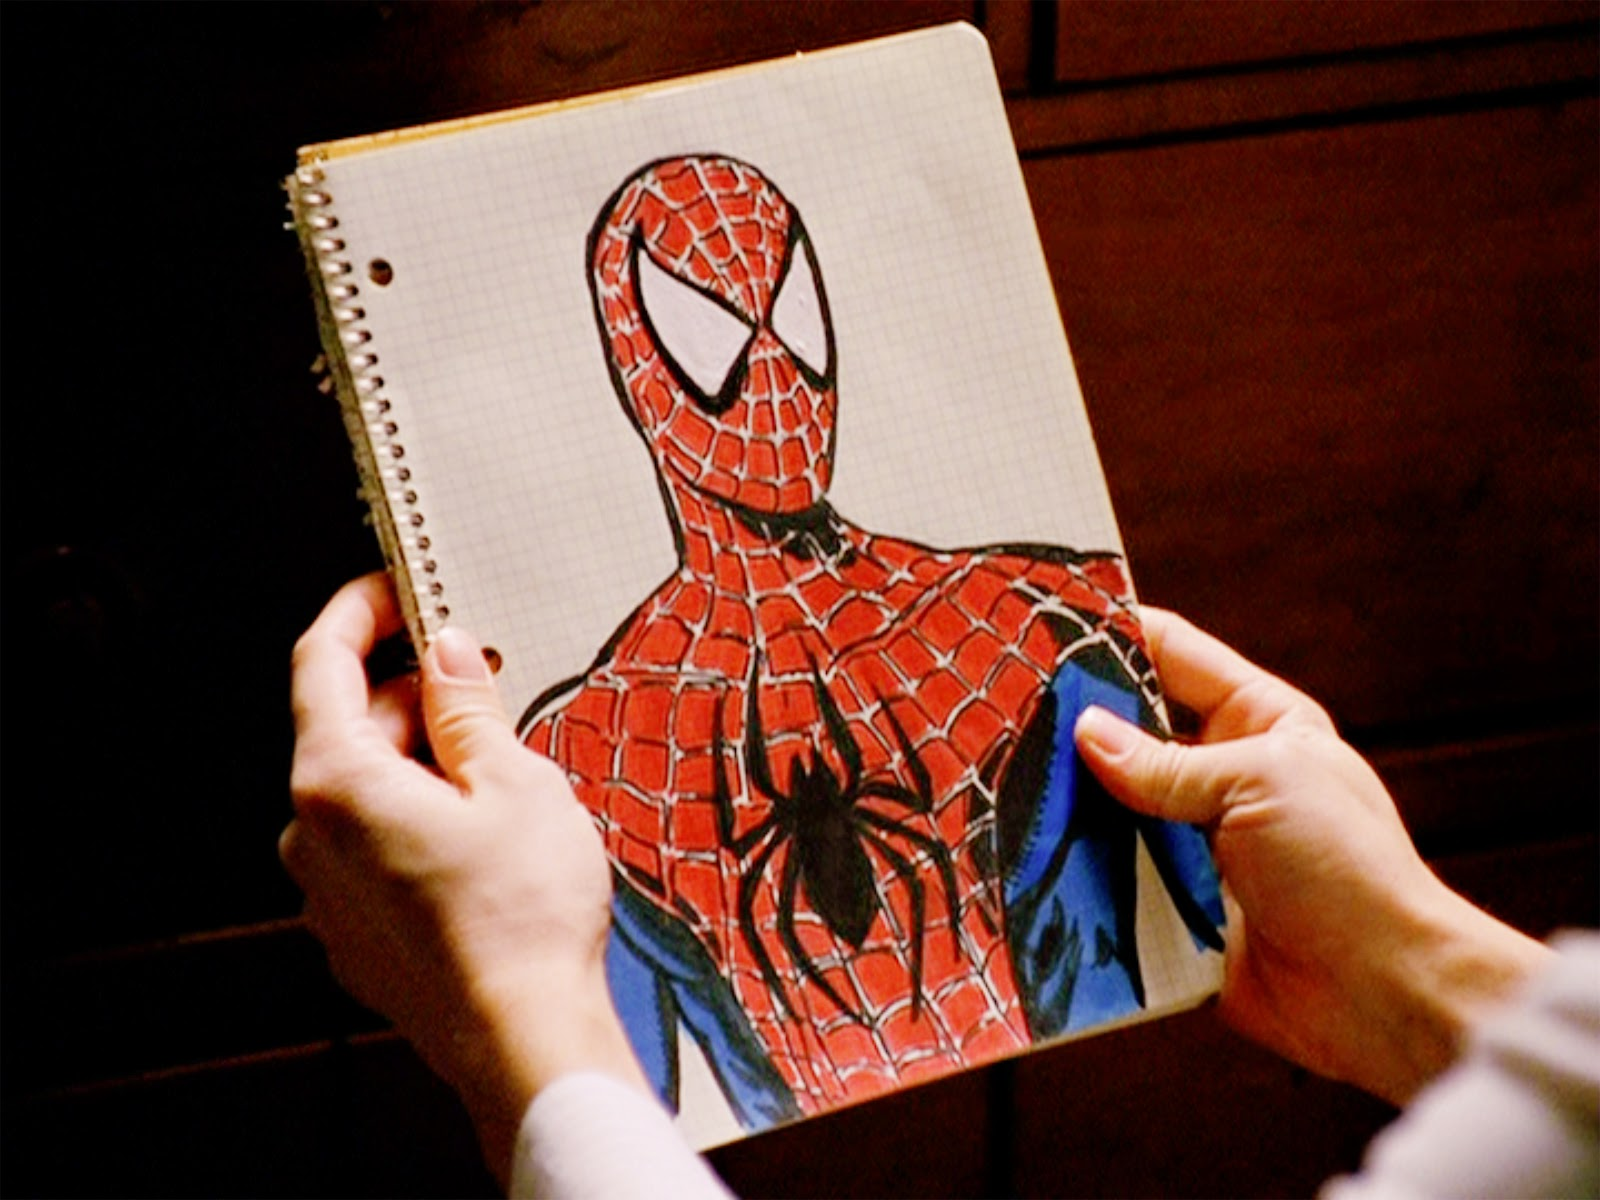 spider man the movie essay An analysis of spider-man: the movie pages 2 words 781 view full essay more essays like this:  sign up to view the complete essay show me the full essay.